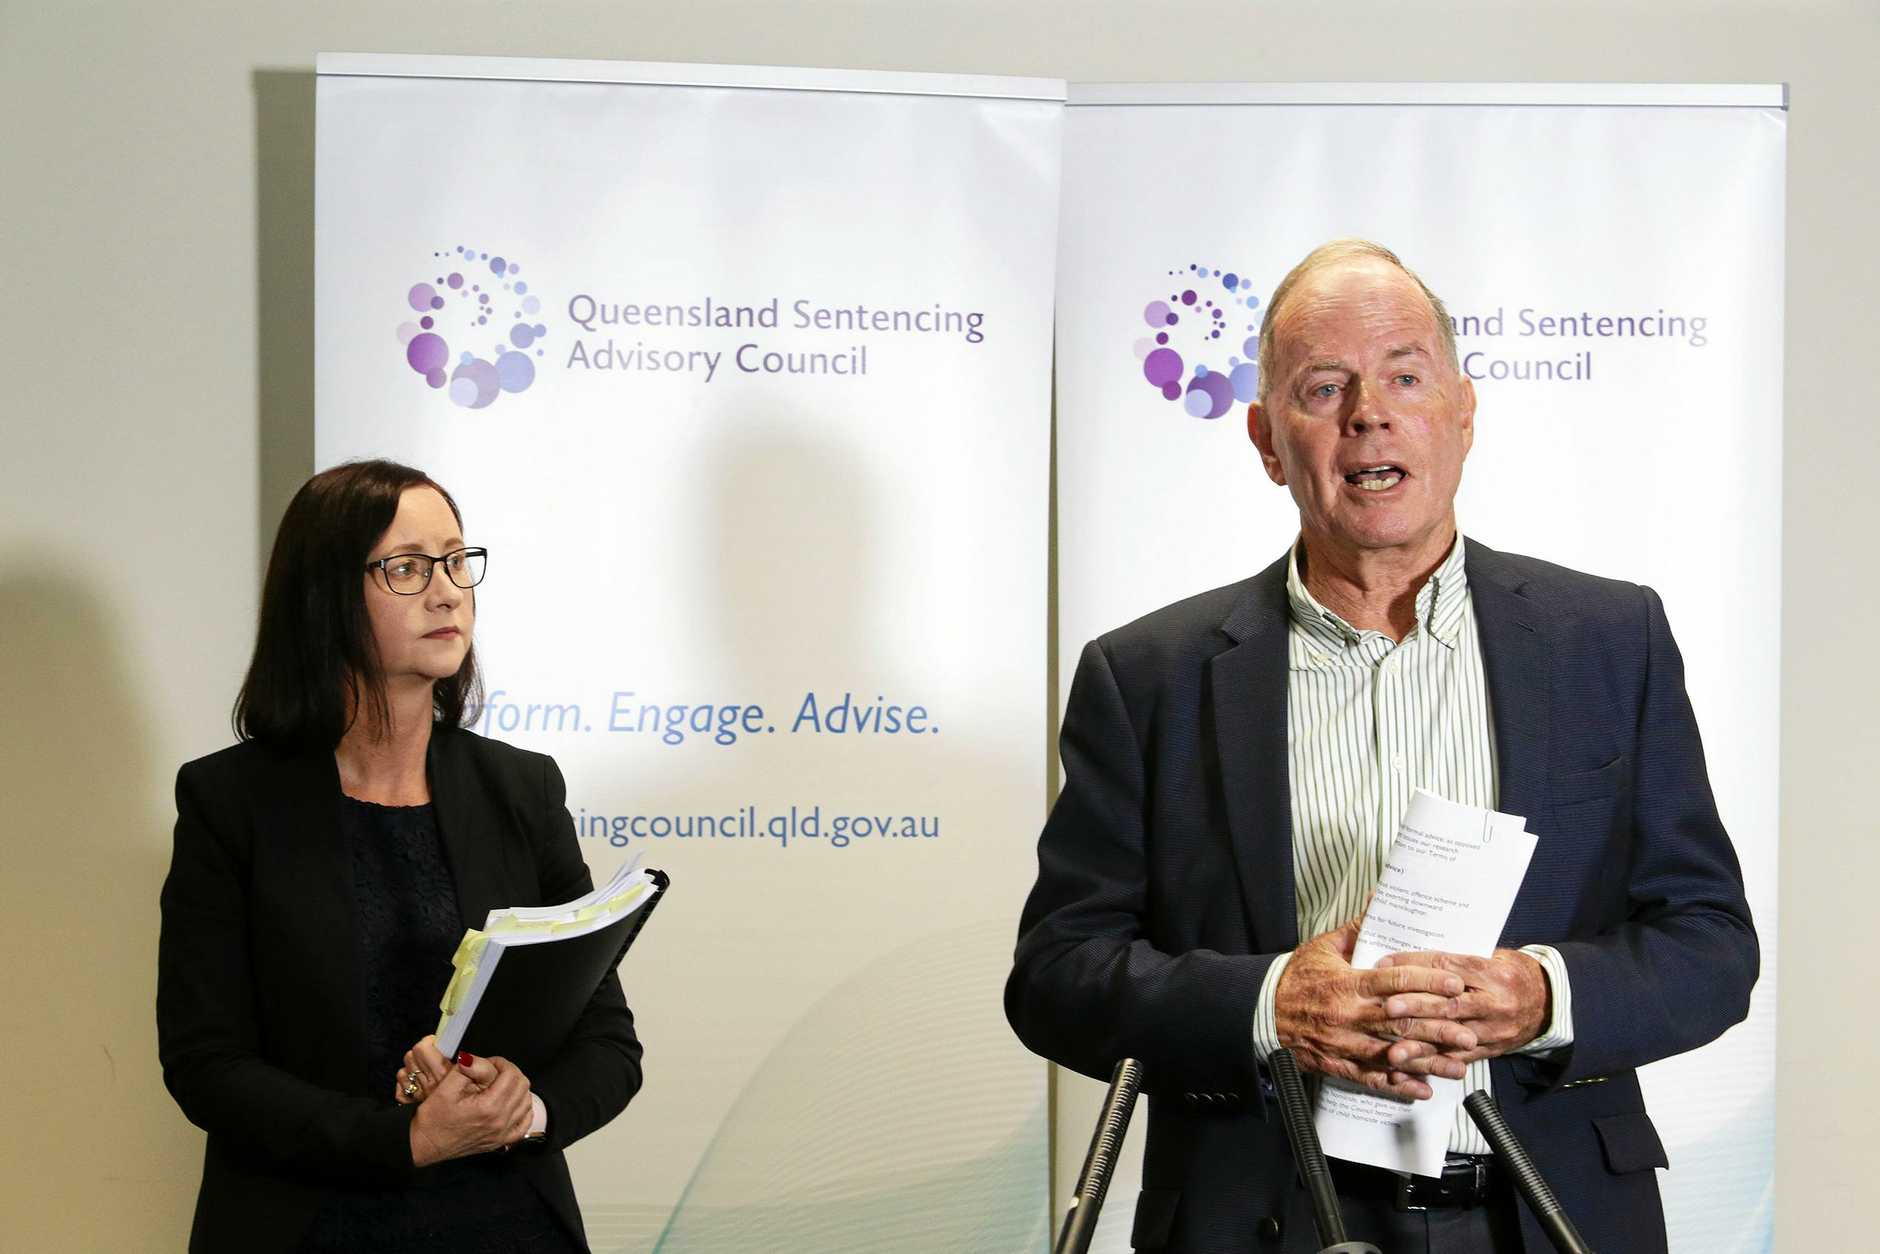 Queensland Sentencing Advisory Council chairman John Robertson addresses media at QSAC in Brisbane CBD on Wednesday, November 21, 2018. The Attorney General addressed the sentencing for criminal offences arising from the death of a child. (AAP Image/Claudia Baxter)